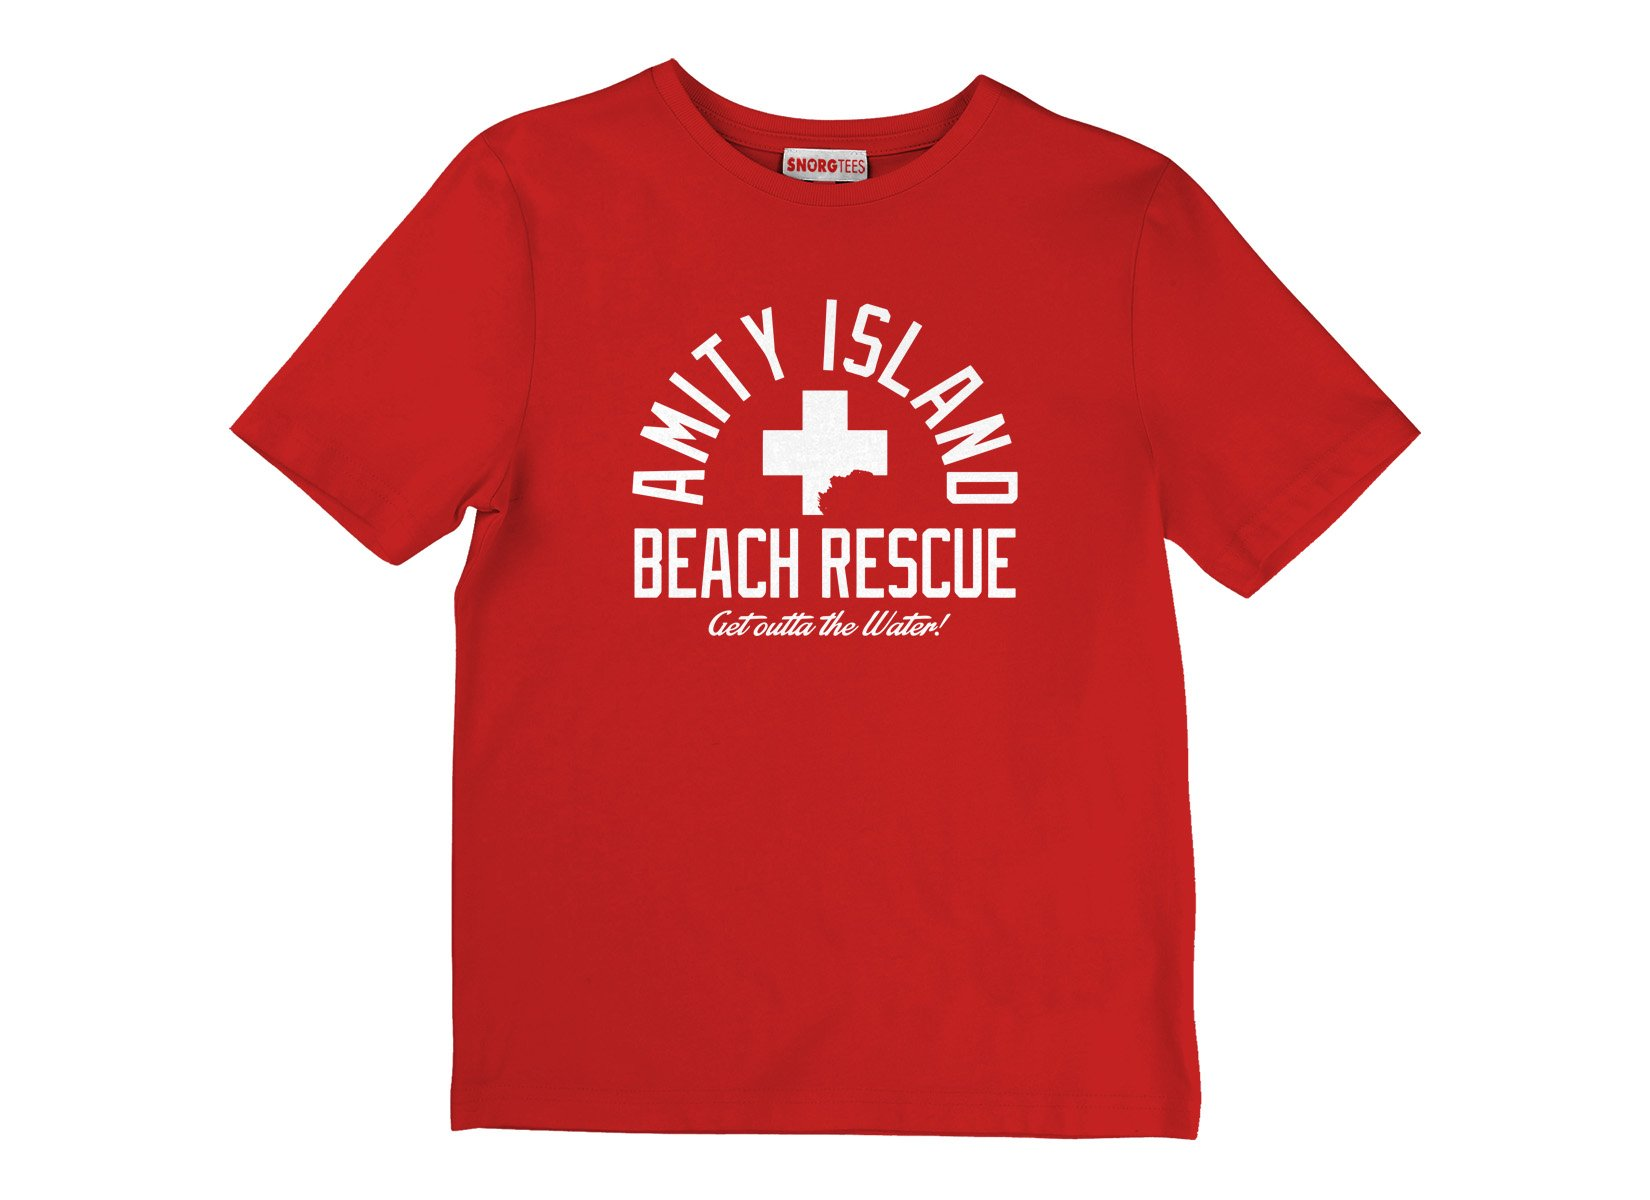 Amity Island Beach Rescue on Kids T-Shirt